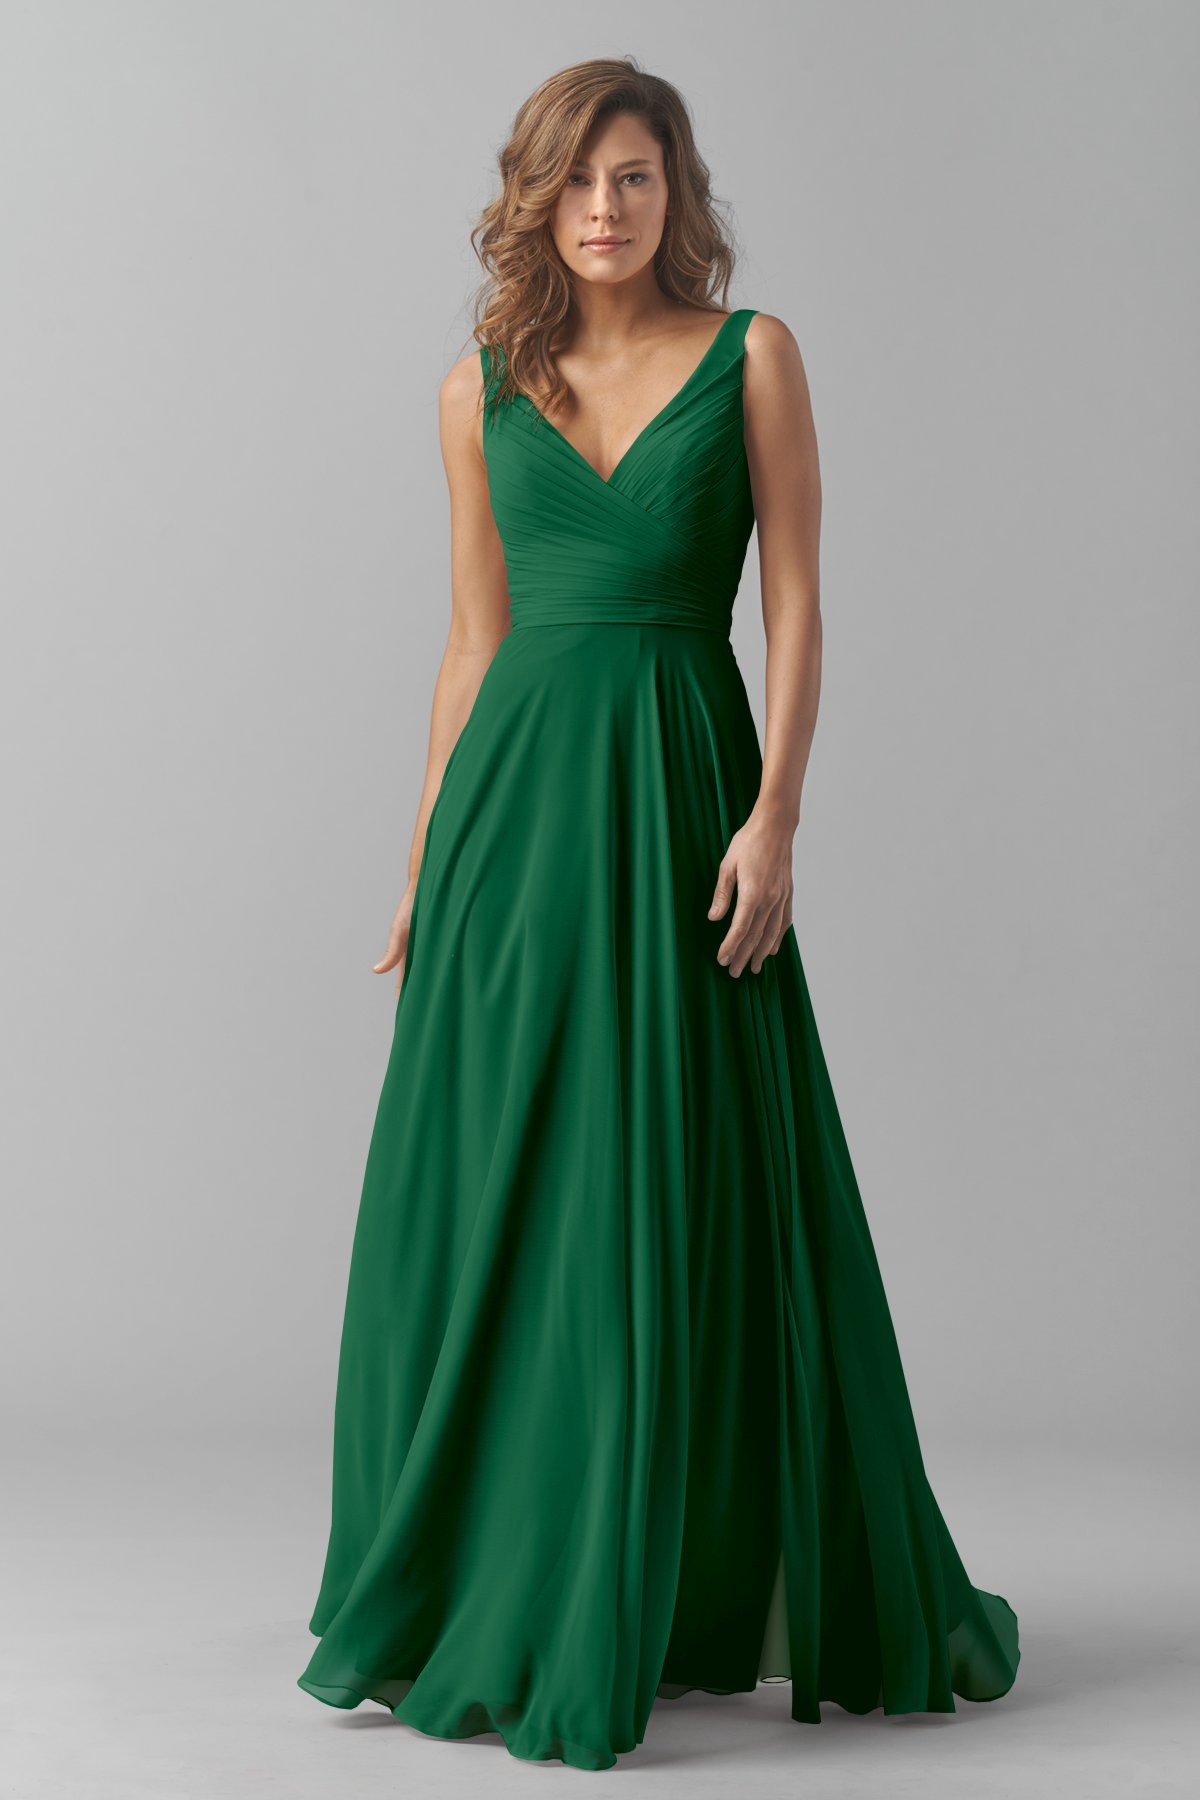 Emerald Green V neck Long bridesmaid dress  Budget